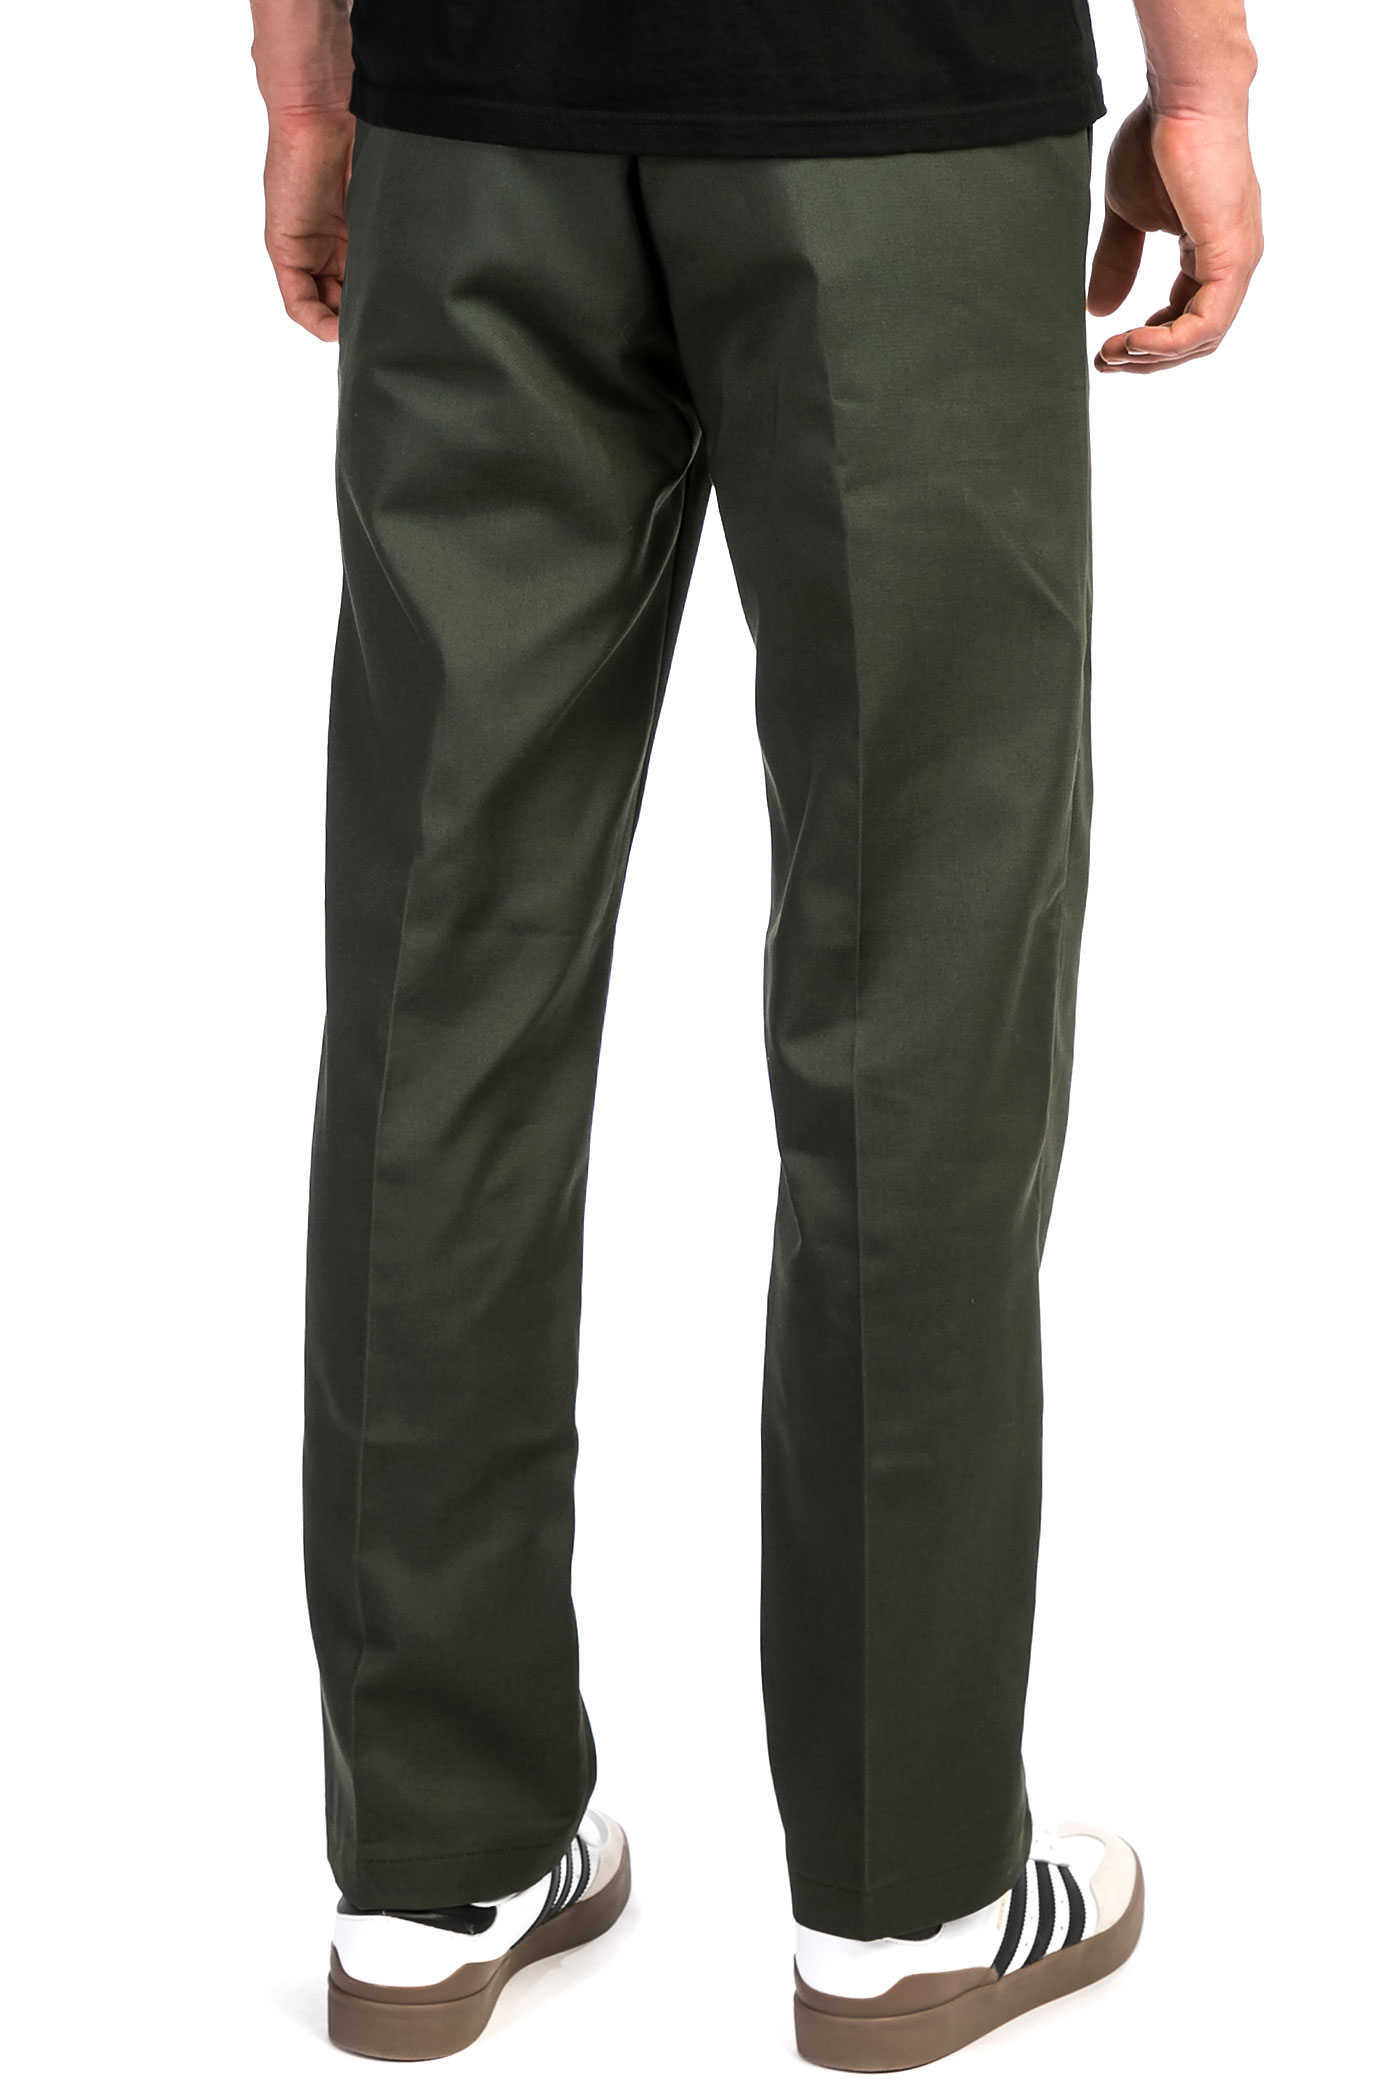 dickies o dog 874 workpant pants olive green buy at. Black Bedroom Furniture Sets. Home Design Ideas